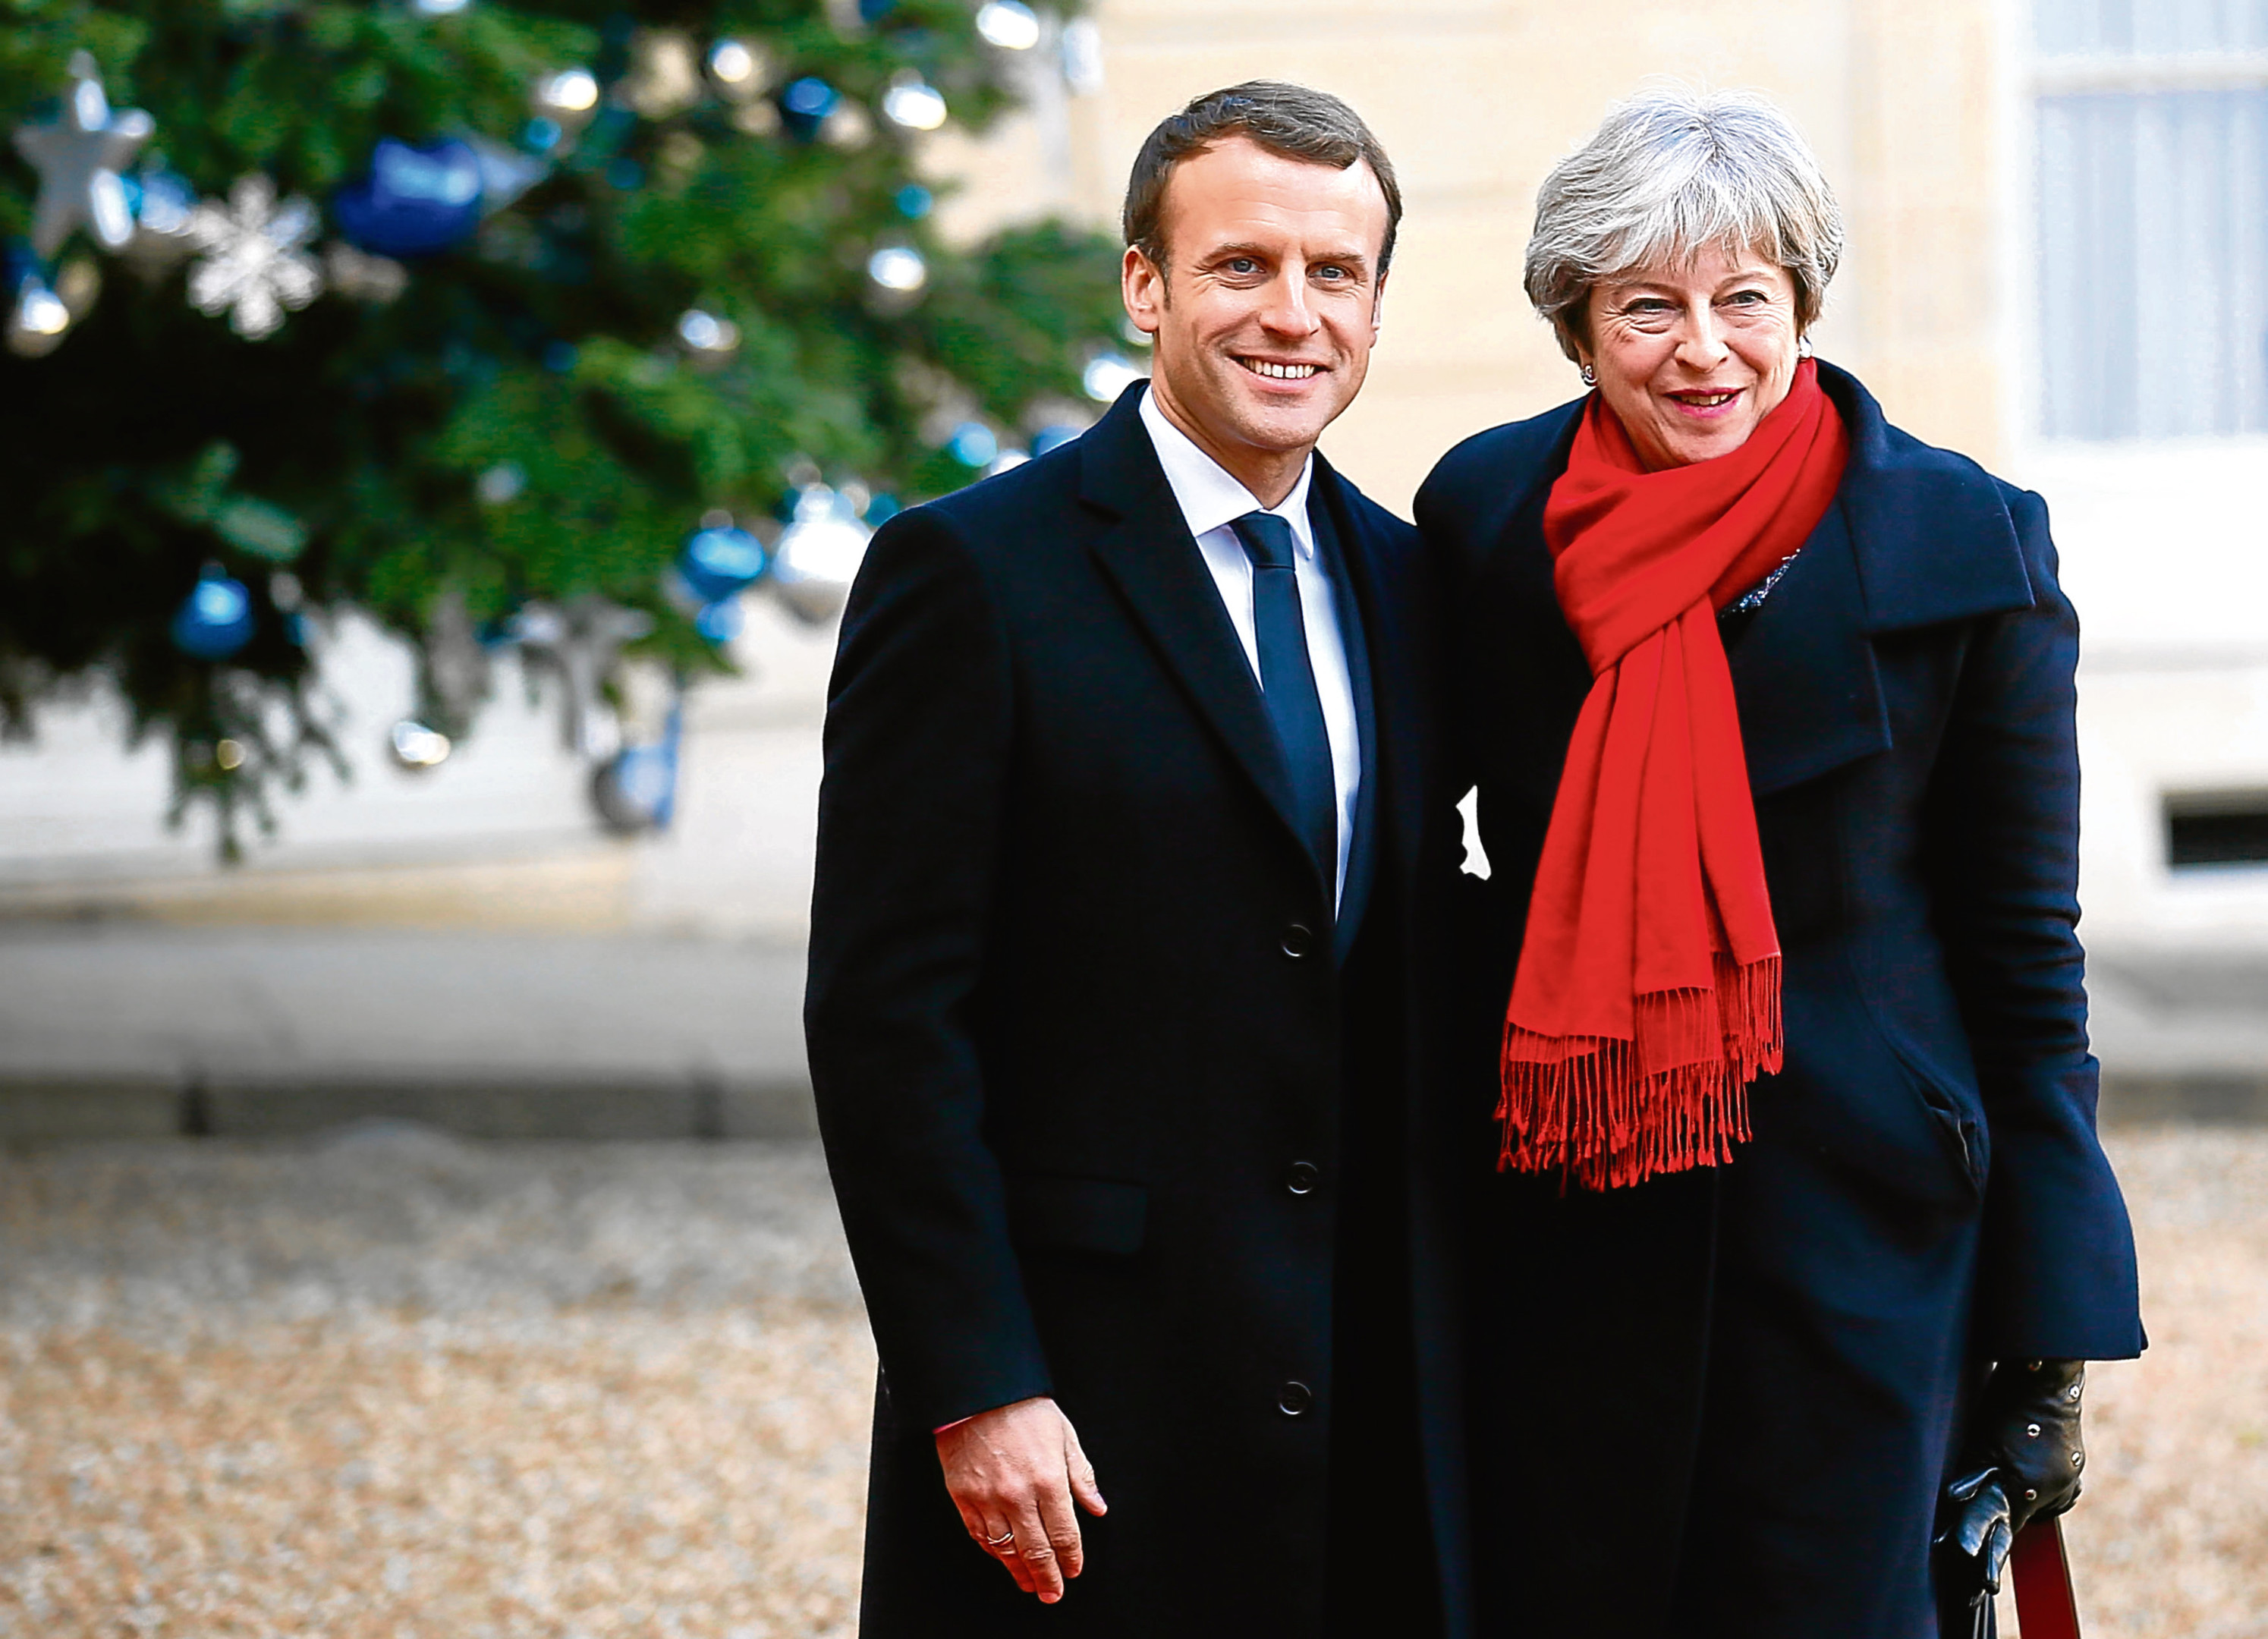 British Prime Minister Theresa May is welcomed by French President before a lunch at the Elysee Palace in Paris, Tuesday, Dec. 12, 2017. (AP Photo/Francois Mori)